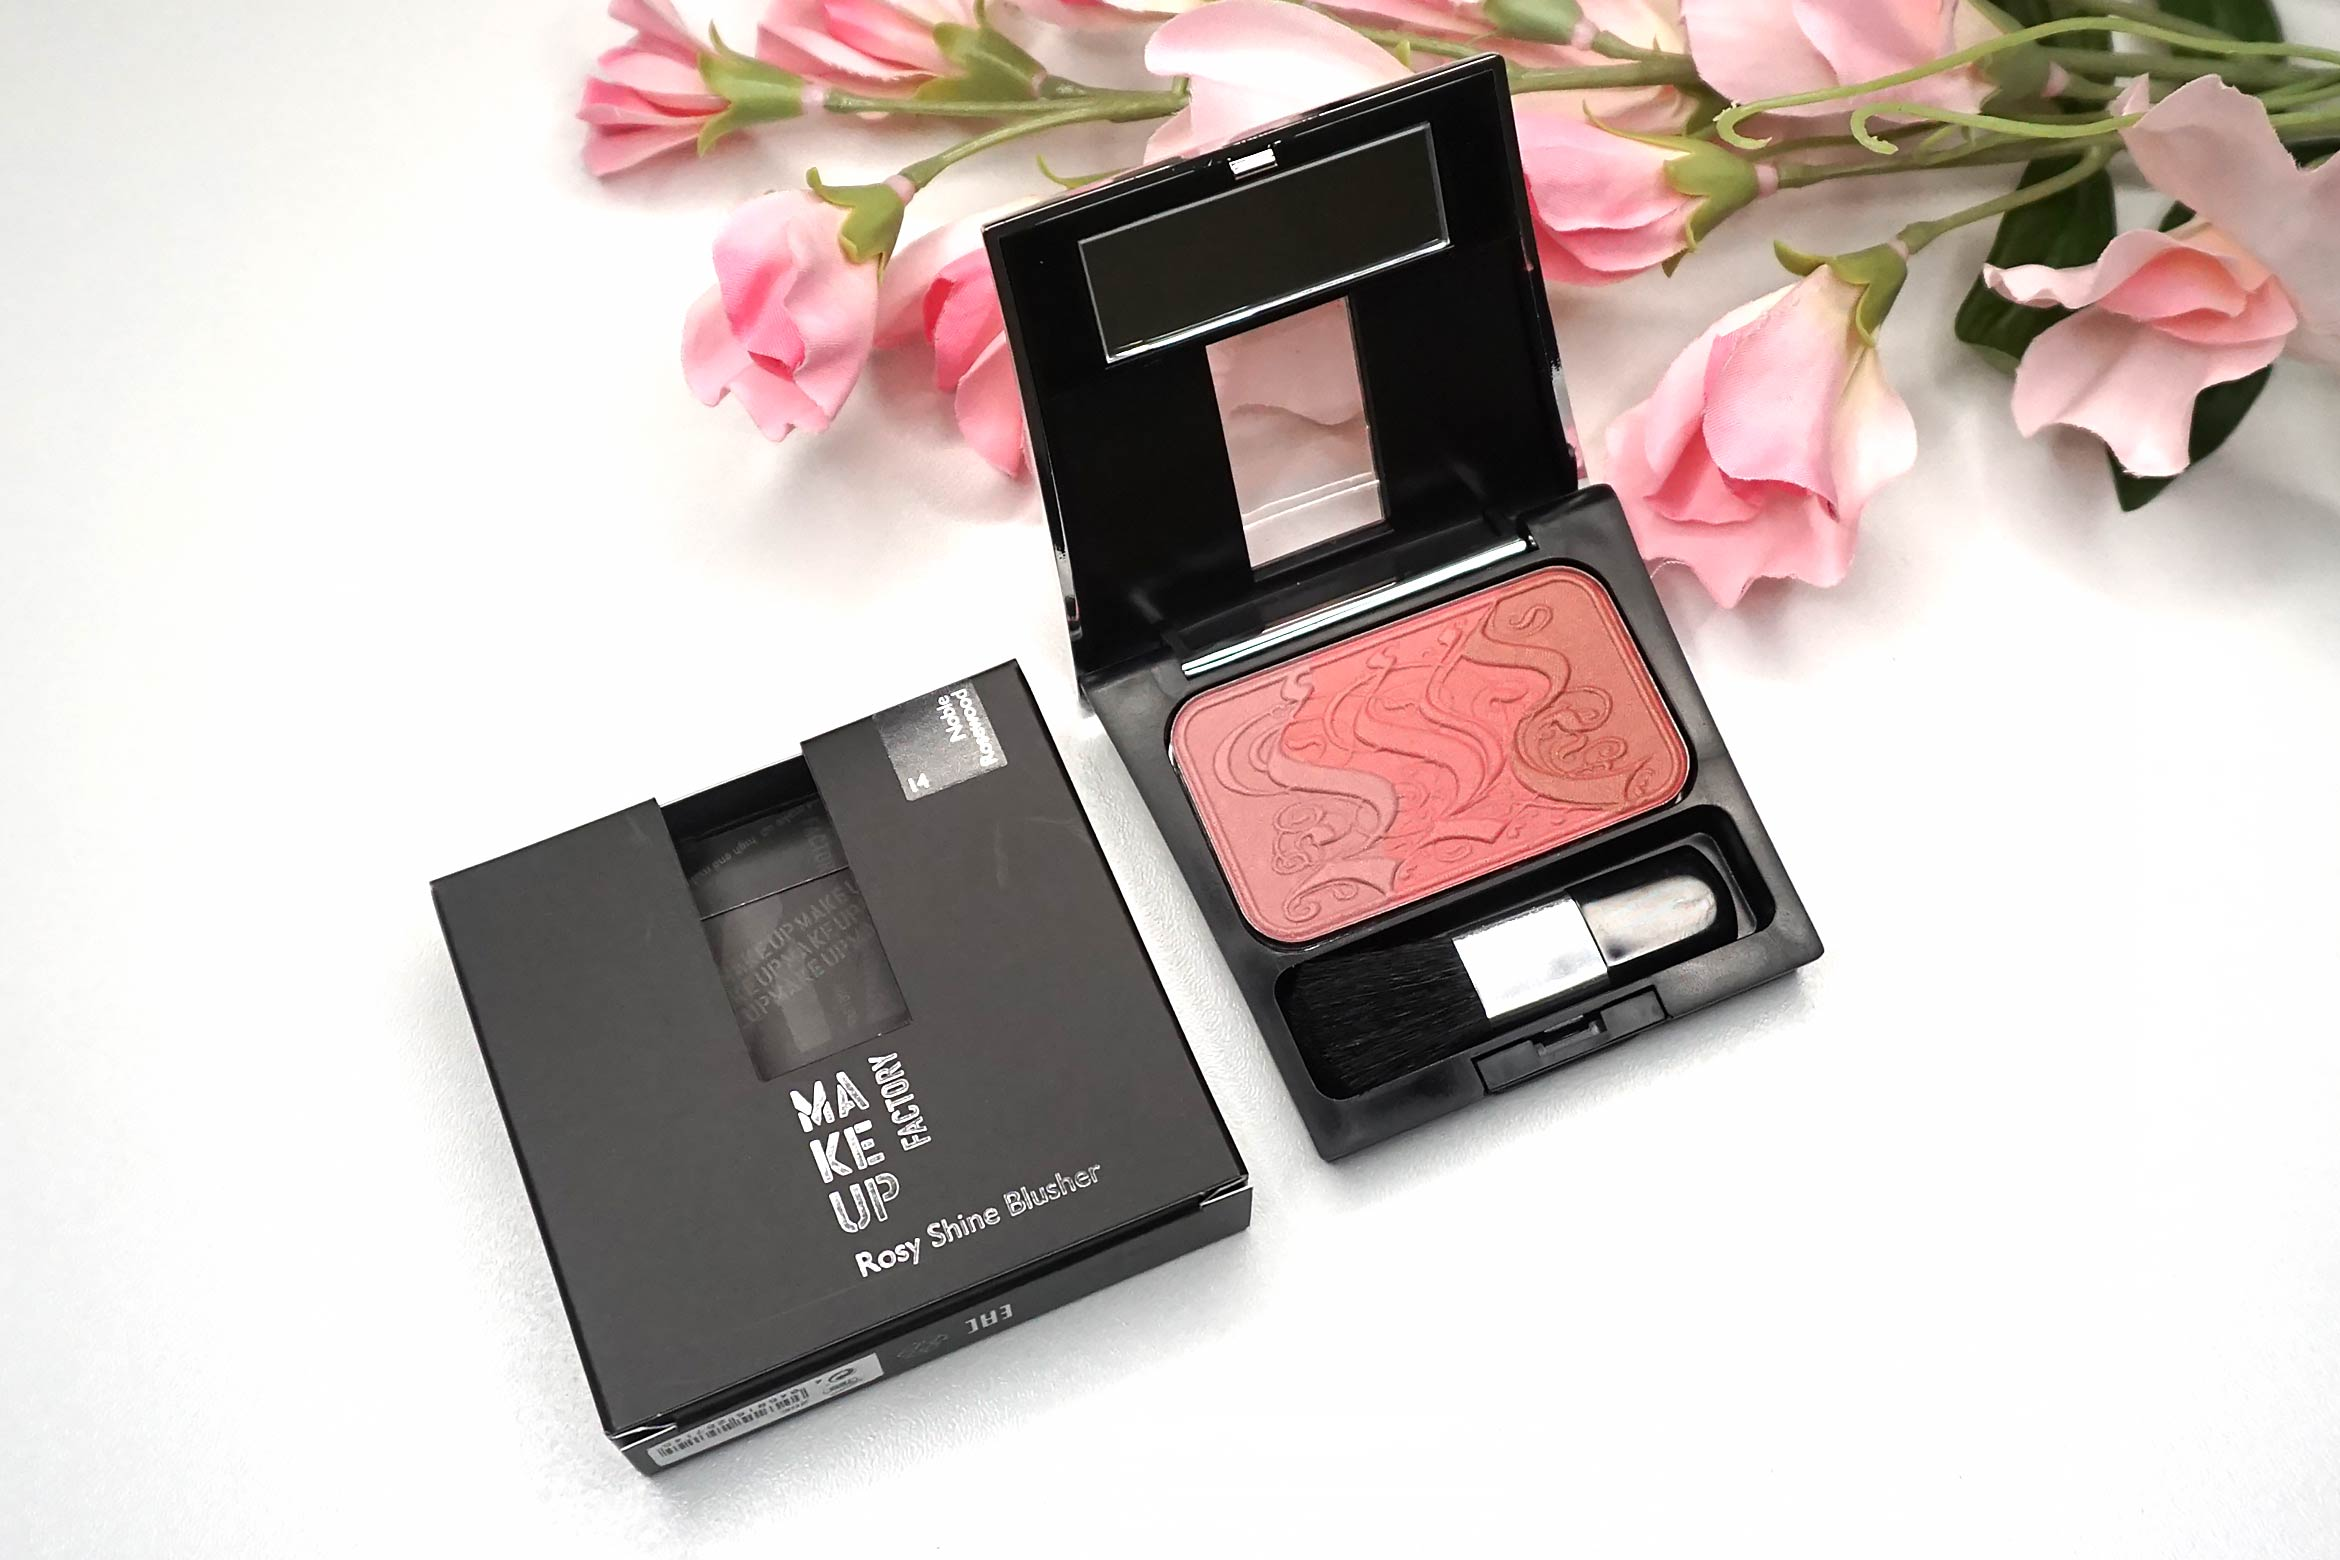 make-up-factory-rosy-shine-blusher-14-review-2